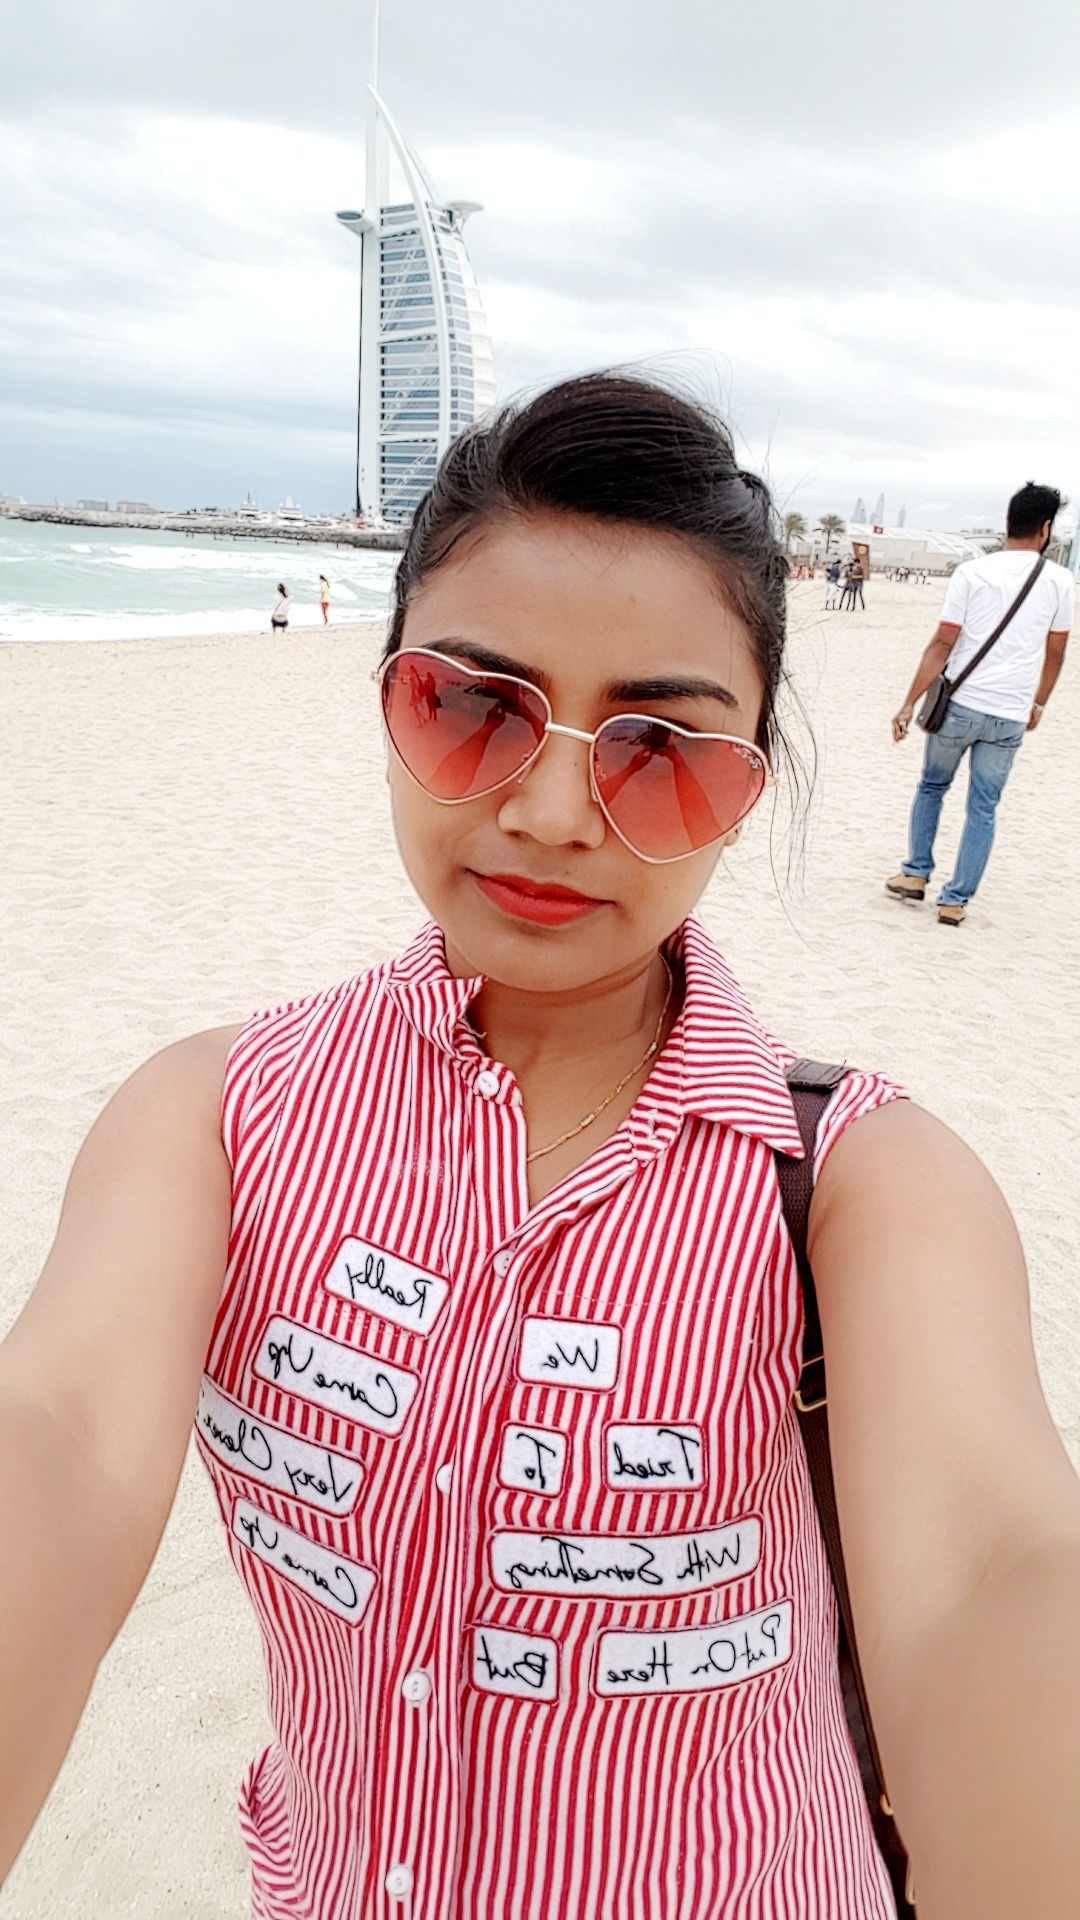 Photo of Jumeirah Beach near Burj Al Arab - 2 C Street - Dubai - United Arab Emirates By Ashika Jain